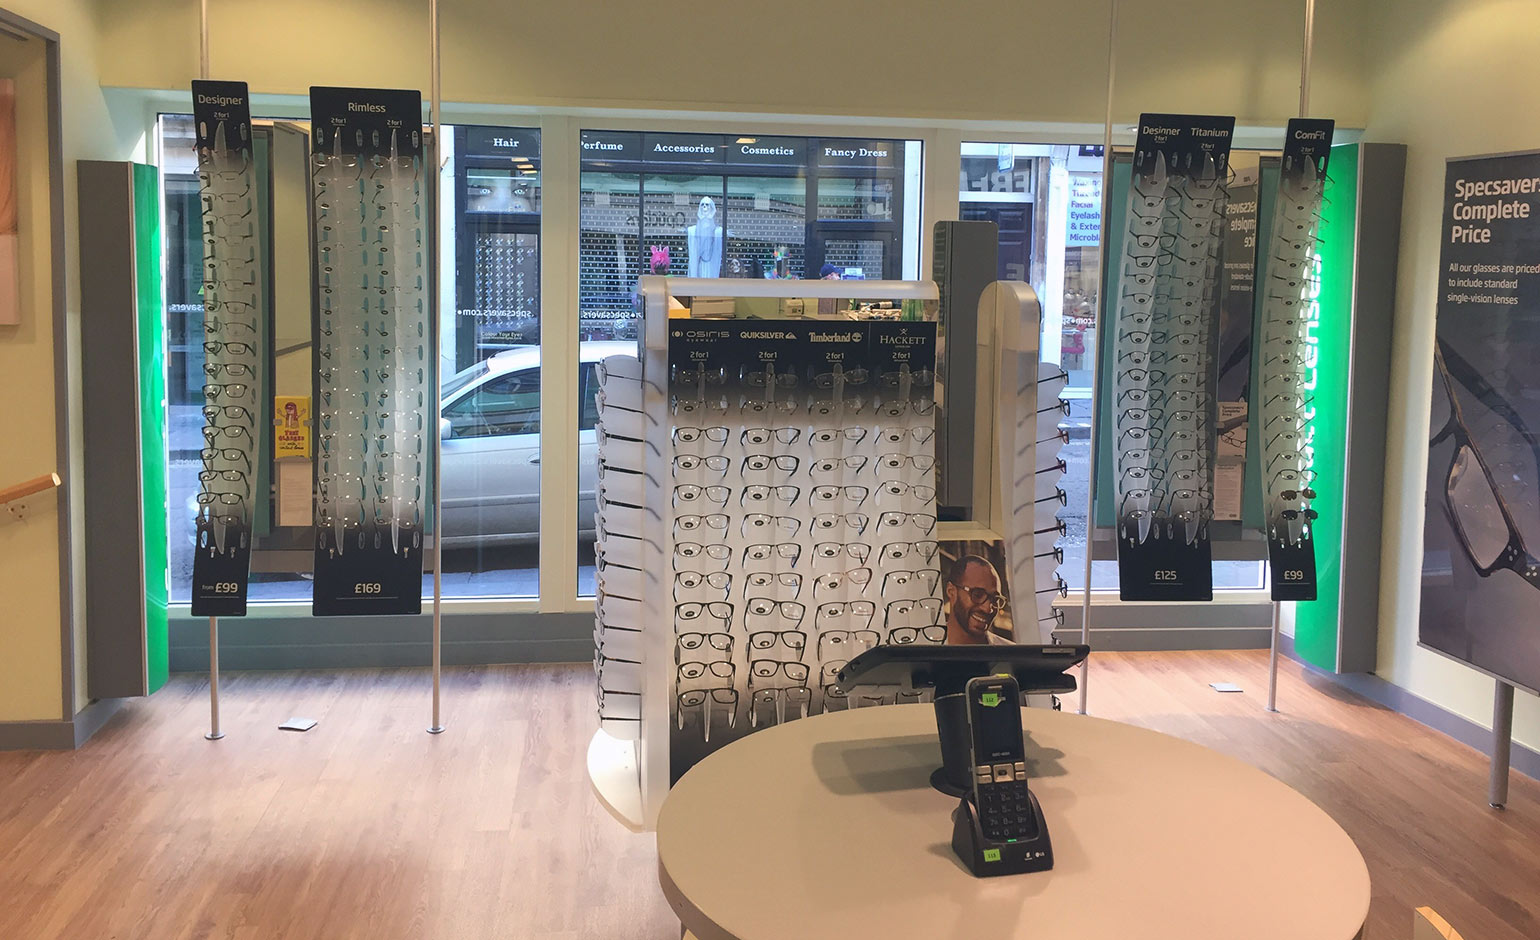 specsavers store on westgate street undergoes complete £